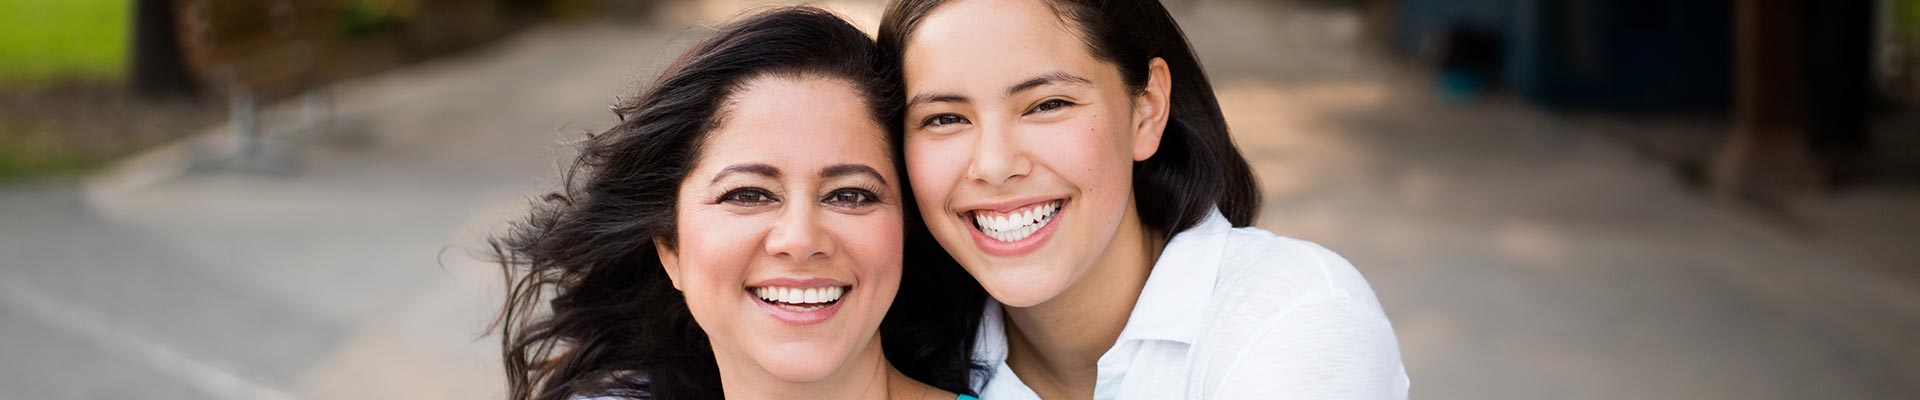 Invisalign Nebraska Orthodontics South Lincoln NE